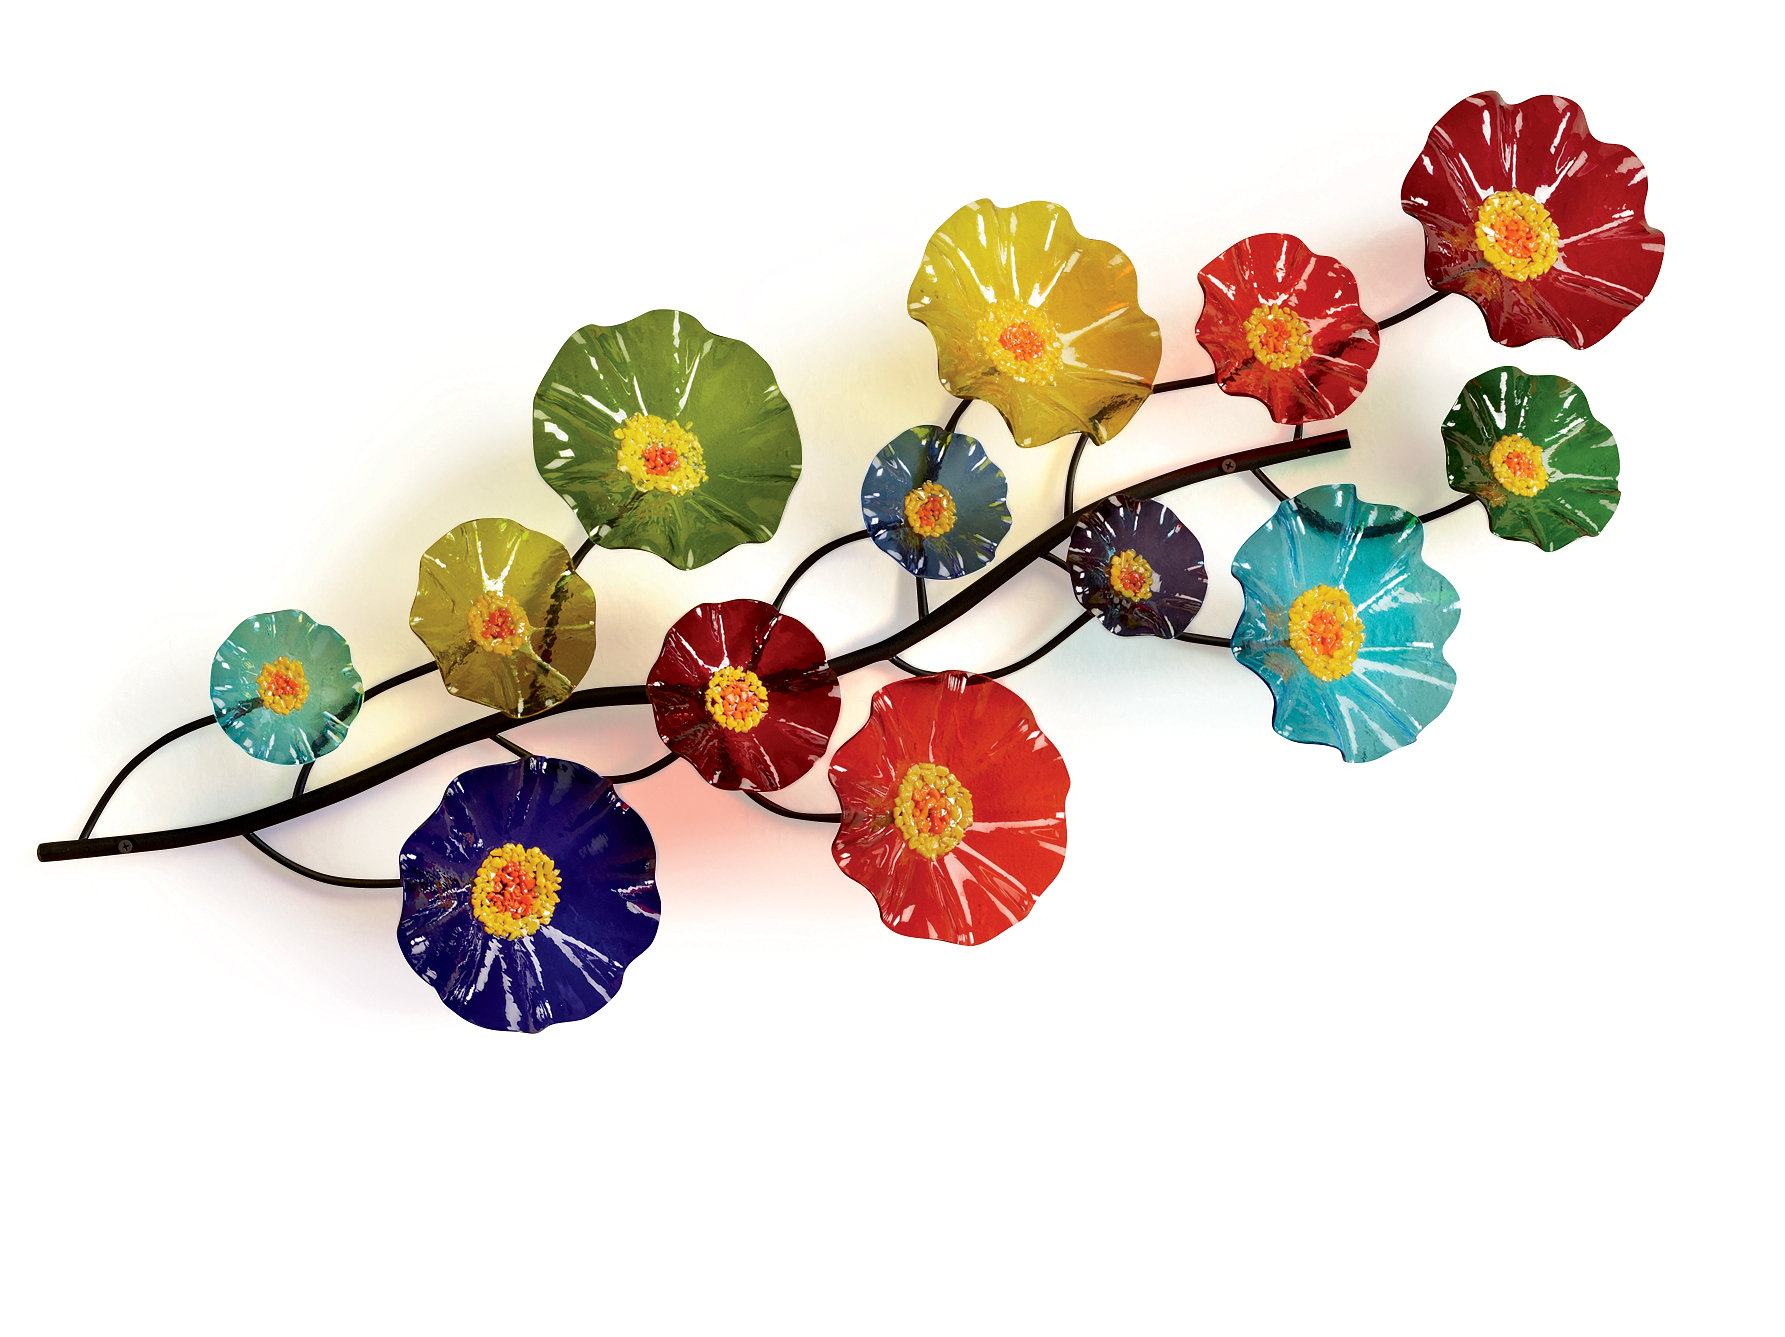 Three Flowers On Vine Wall Decor Pertaining To Well Liked Prism Wall Vinescott Johnson And Shawn Johnson (art Glass Wall (View 4 of 20)